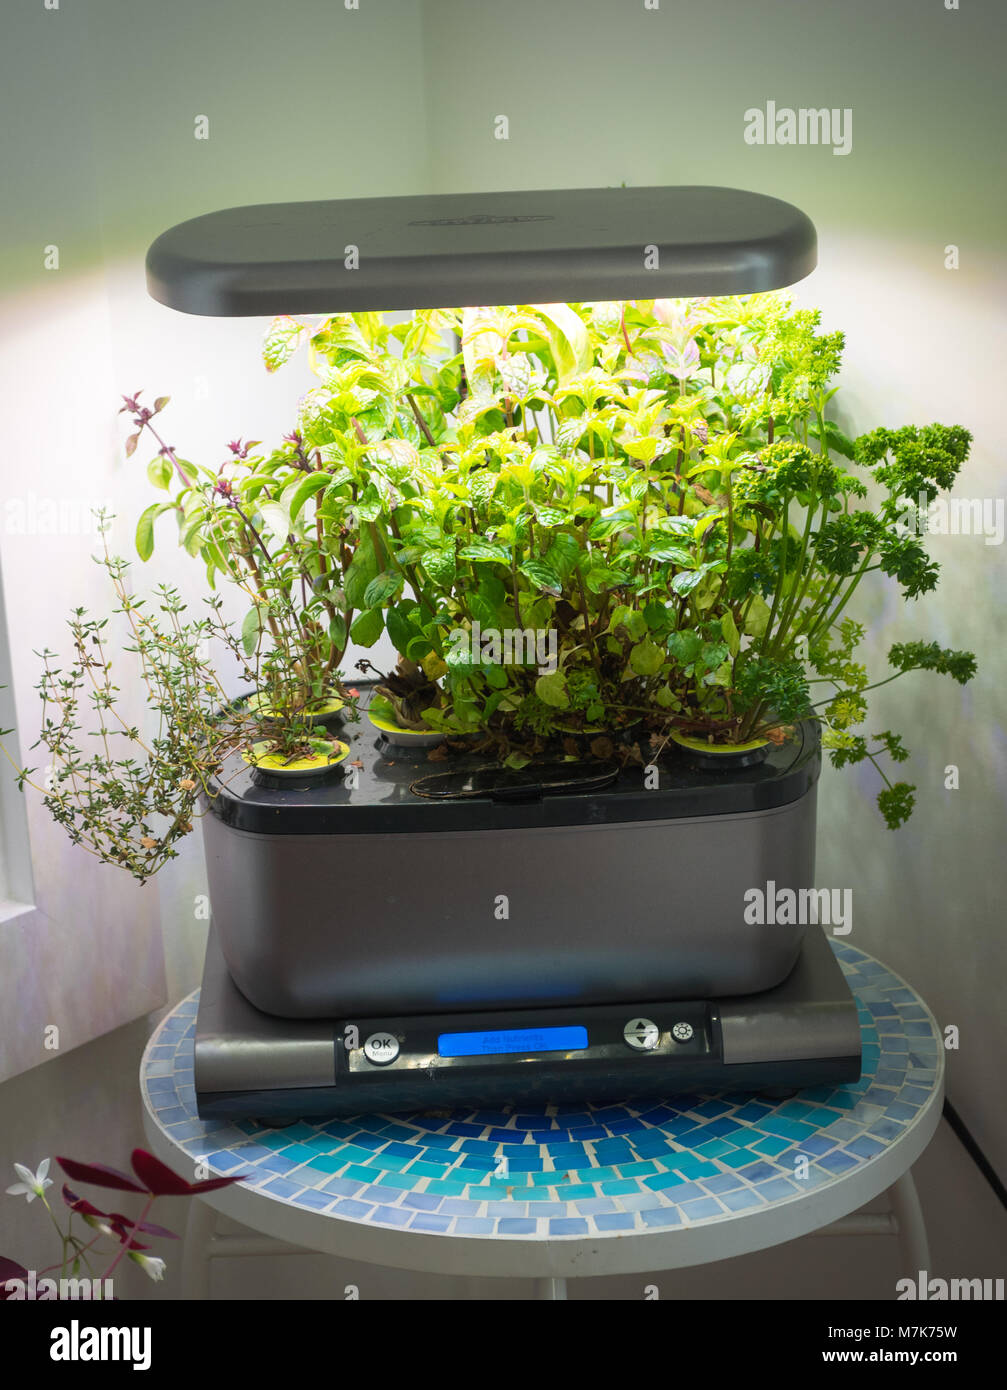 Aerogarden Indoor Garden An miracle gro aerogarden a popular home indoor garden that uses an miracle gro aerogarden a popular home indoor garden that uses hydroponics to grow herbs and vegetables workwithnaturefo